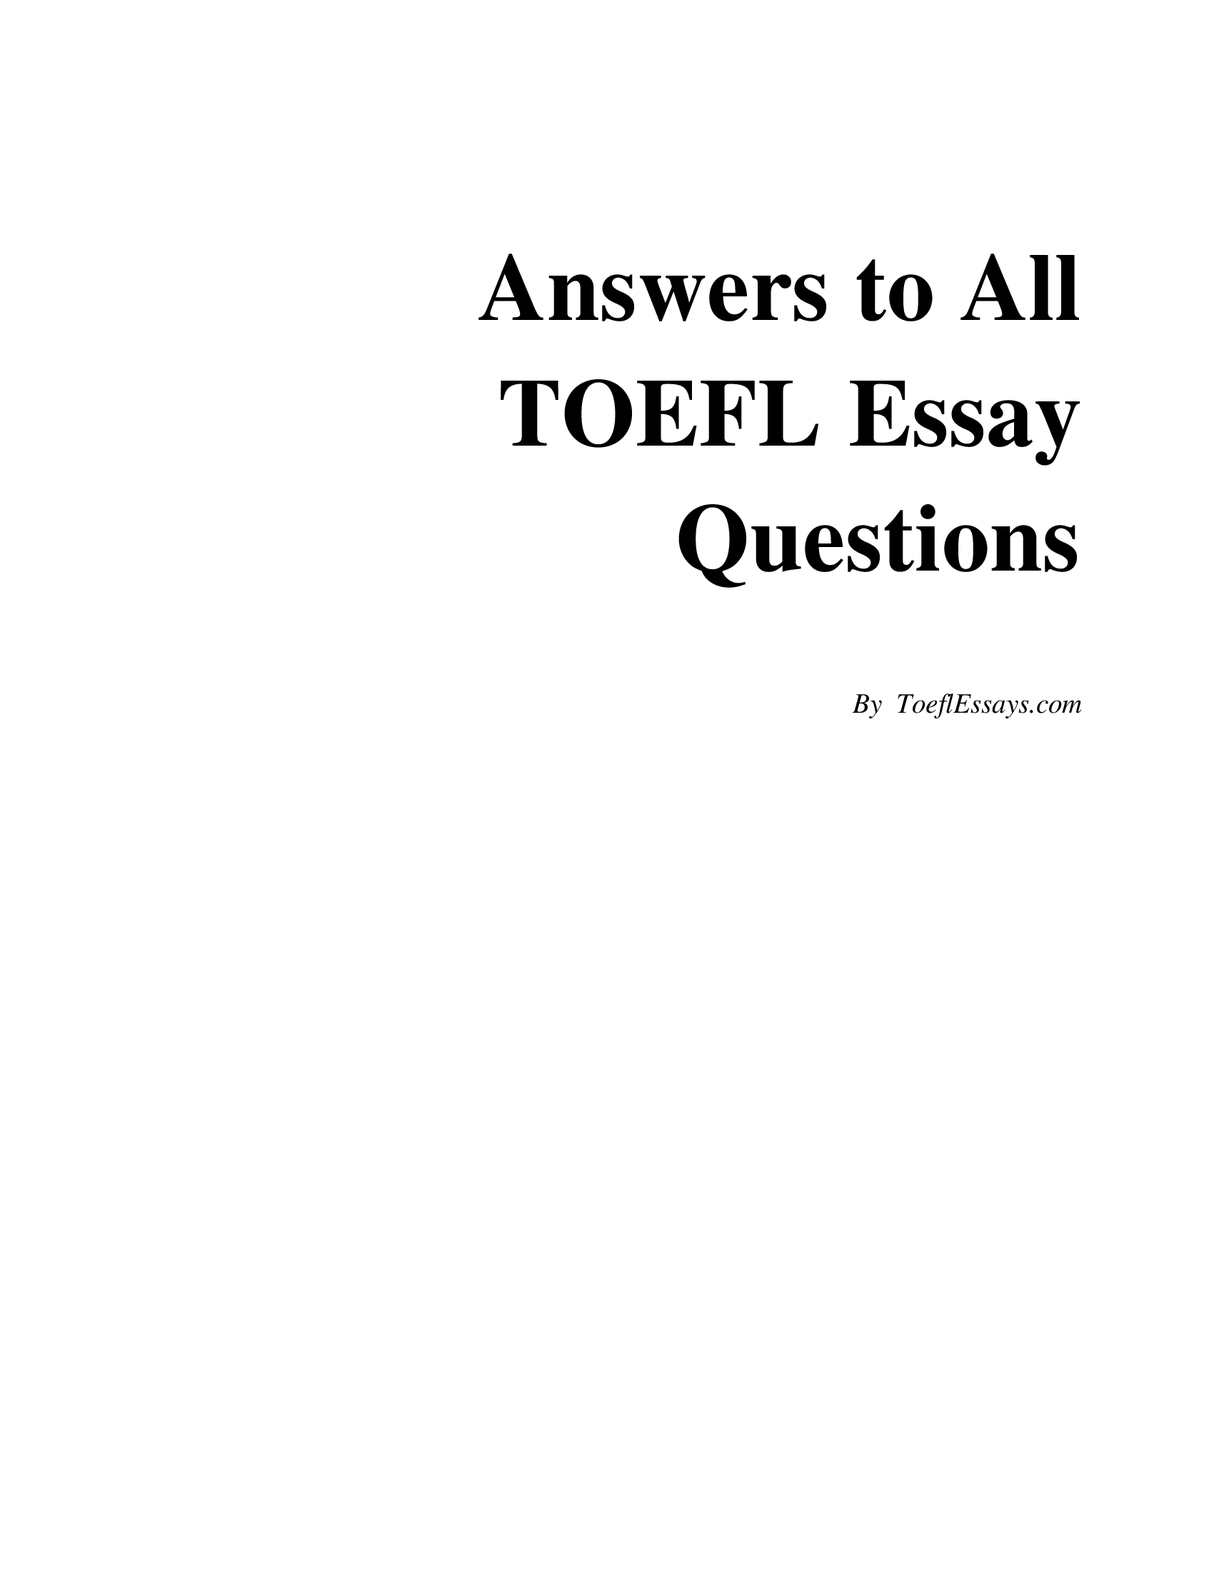 answers to all toefl essay questions.rar